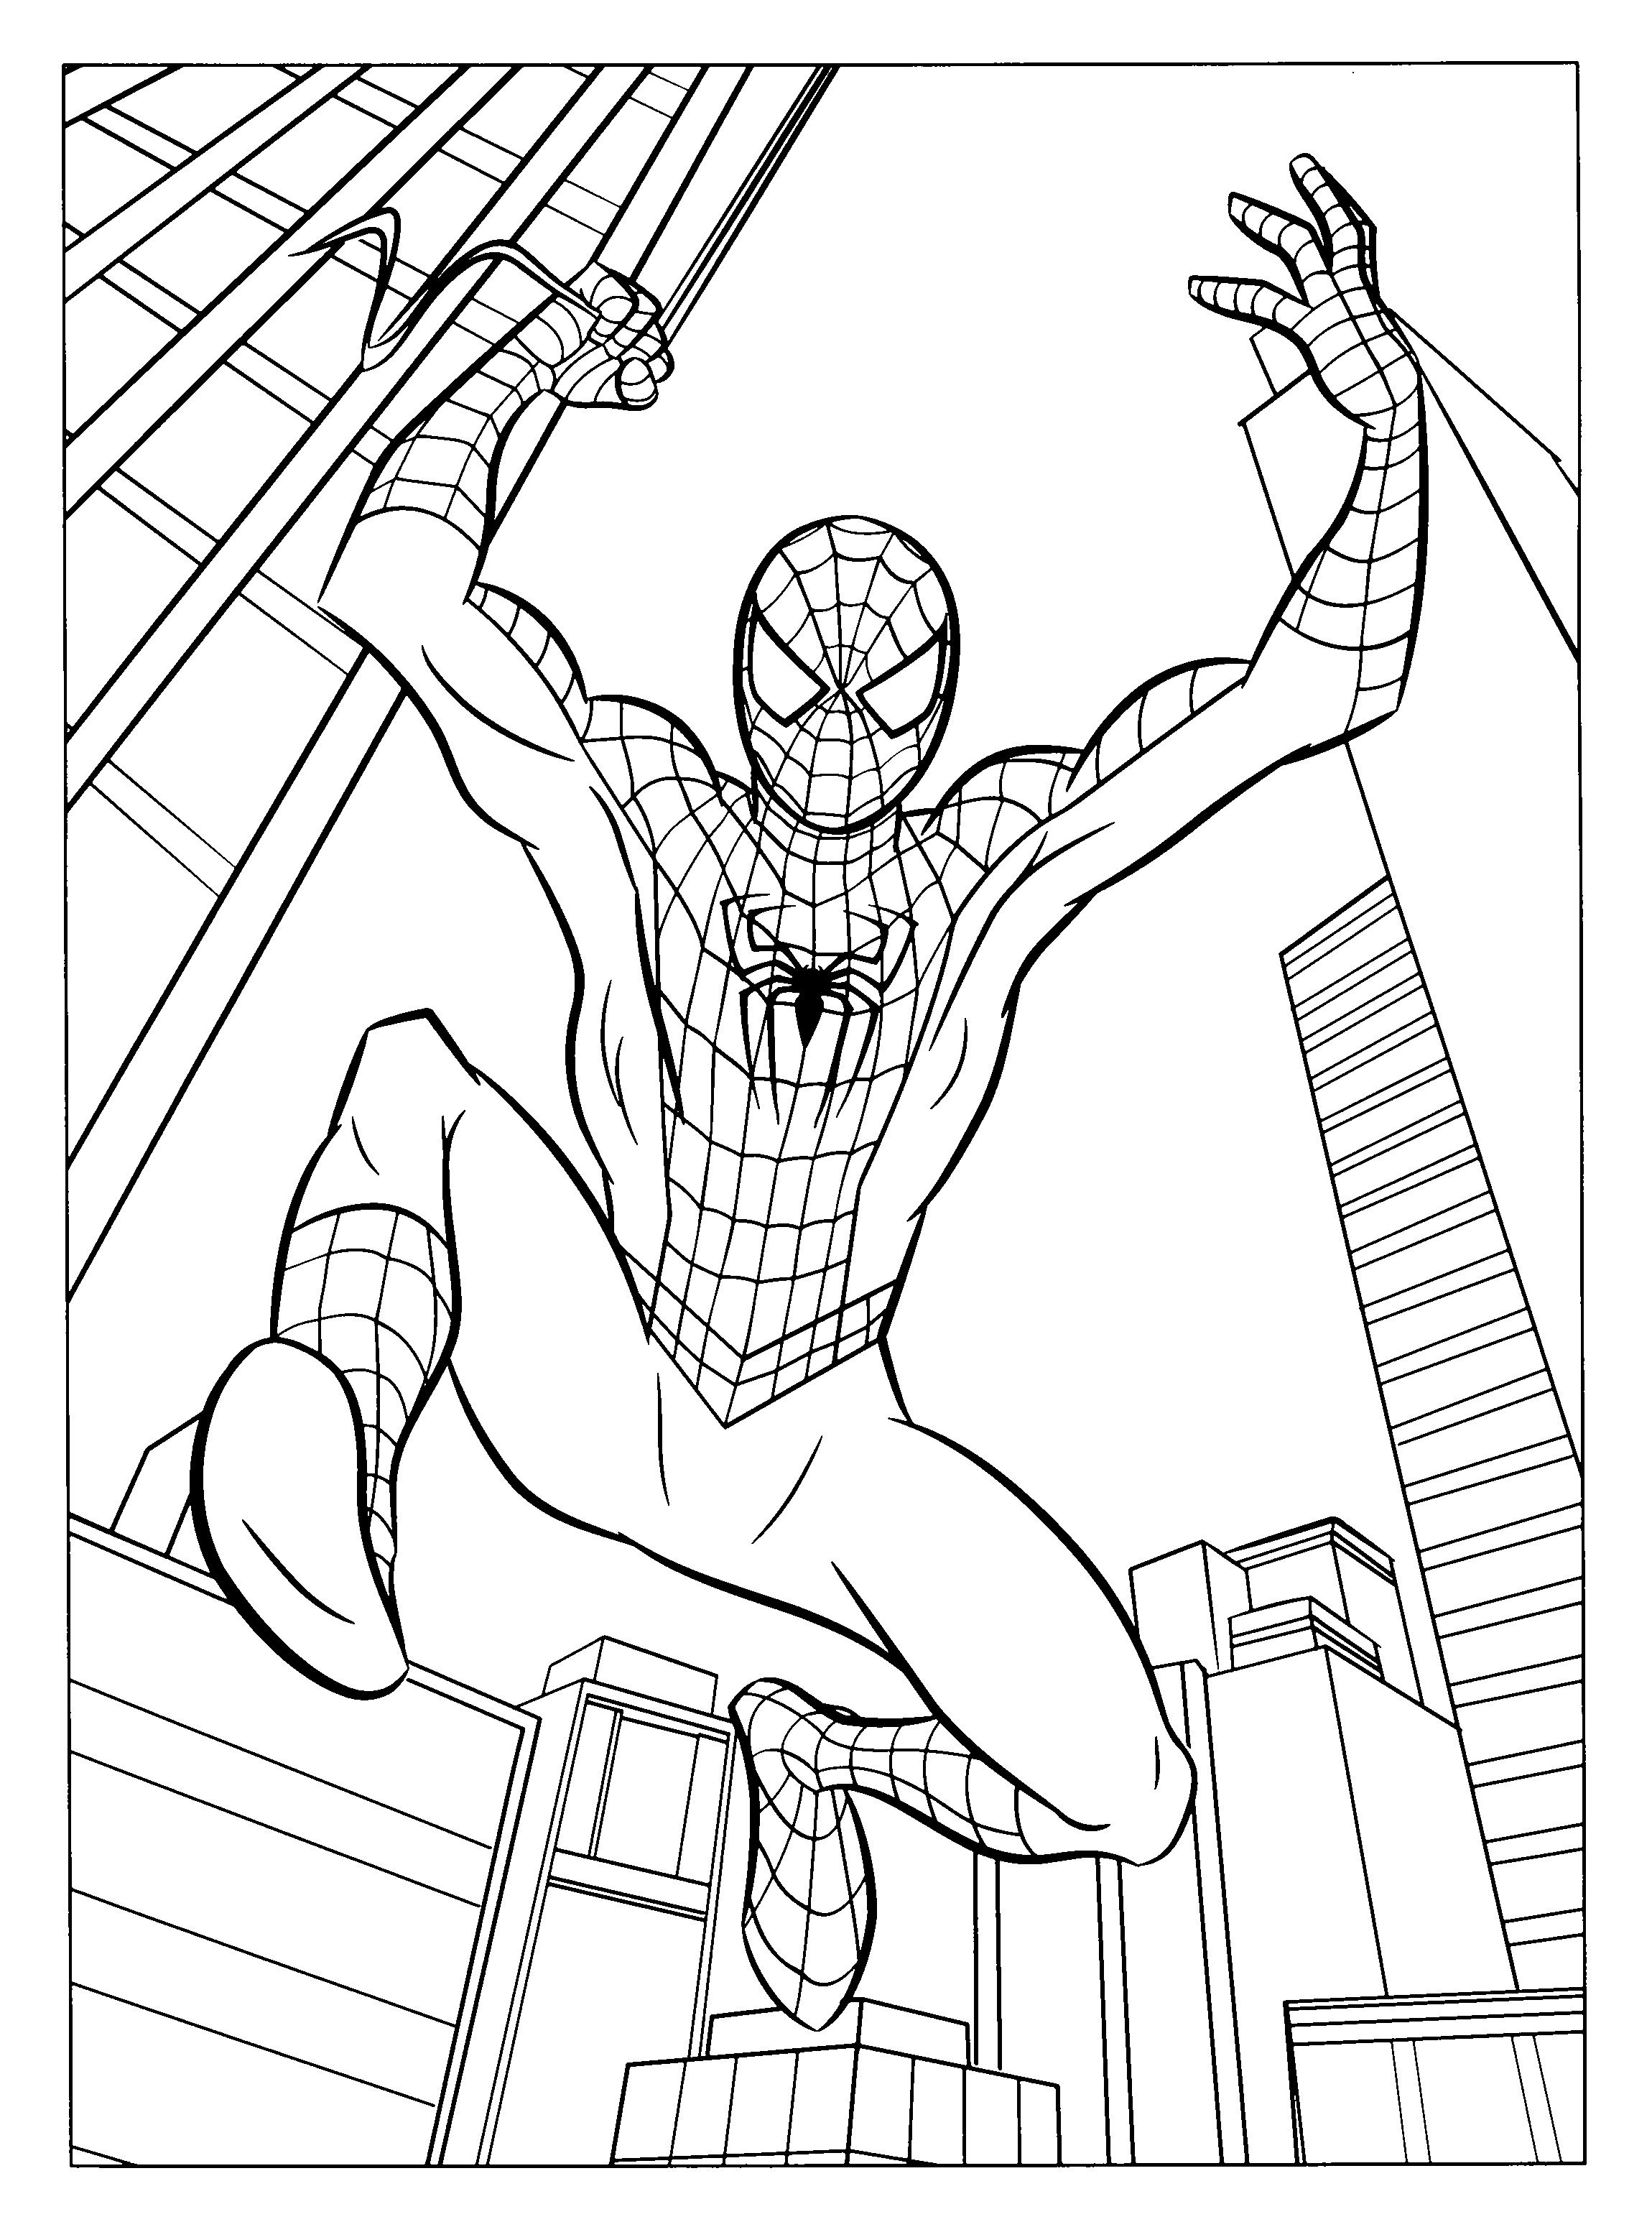 Spiderman Coloring Page